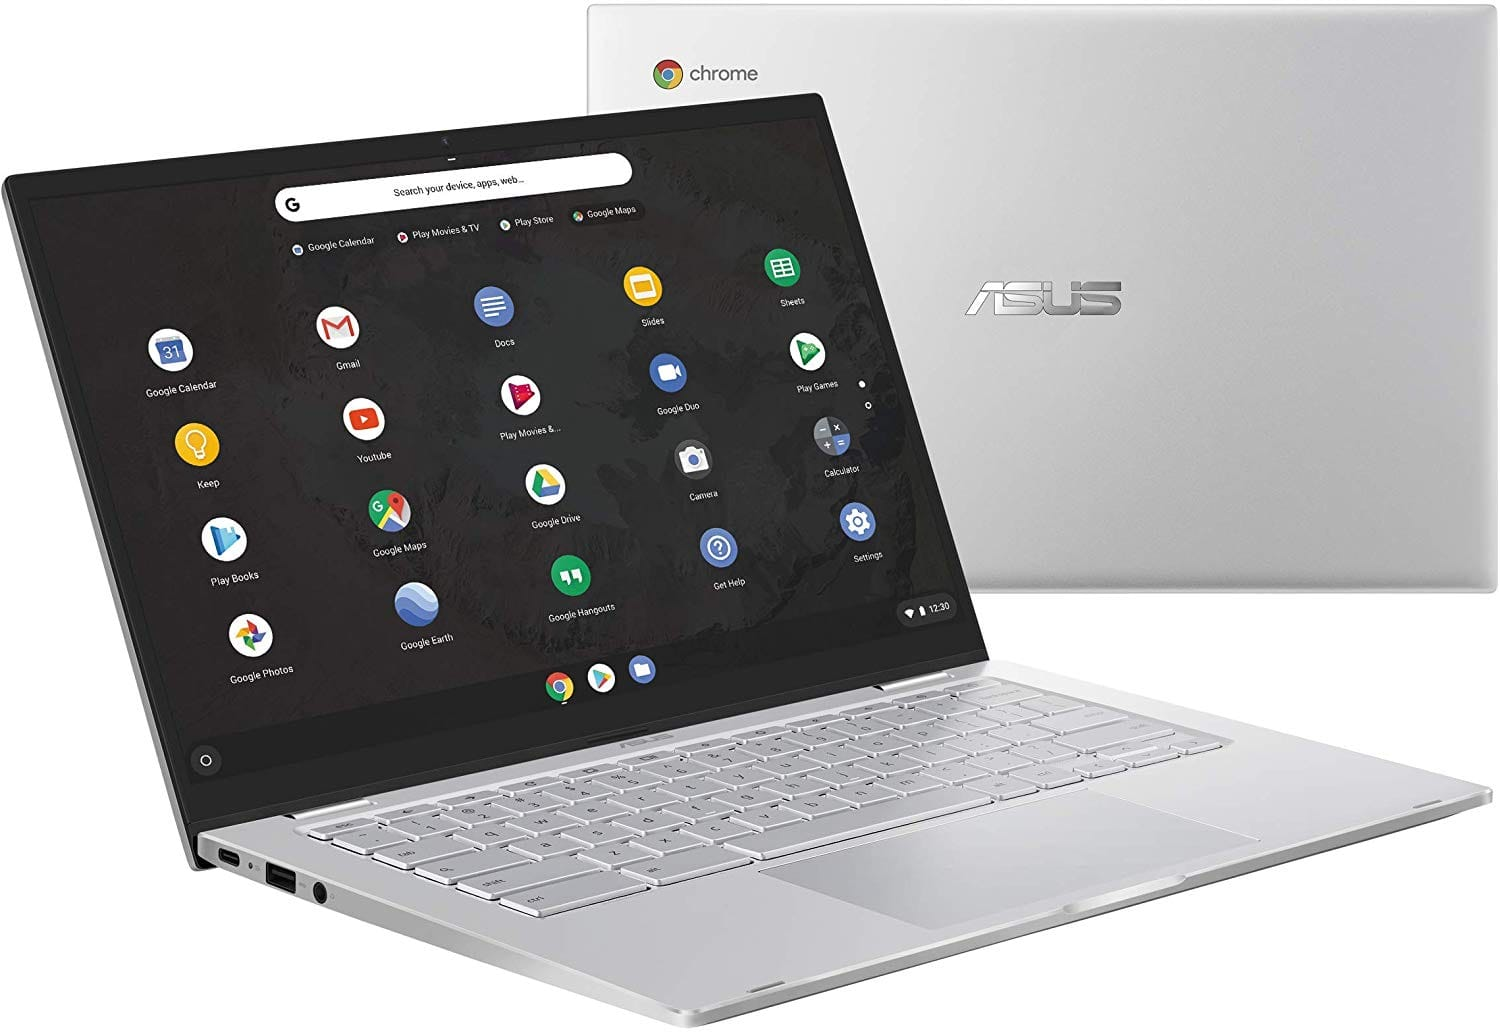 "Asus Chromebook C425 Clamshell Laptop $399 14"" FHD  Intel Core M3-8100Y Processor, 8GB RAM, 64GB eMMC, Backlit KB, Silver, Chrome OS, C425TA-DH384 at Amazon. $399.99"